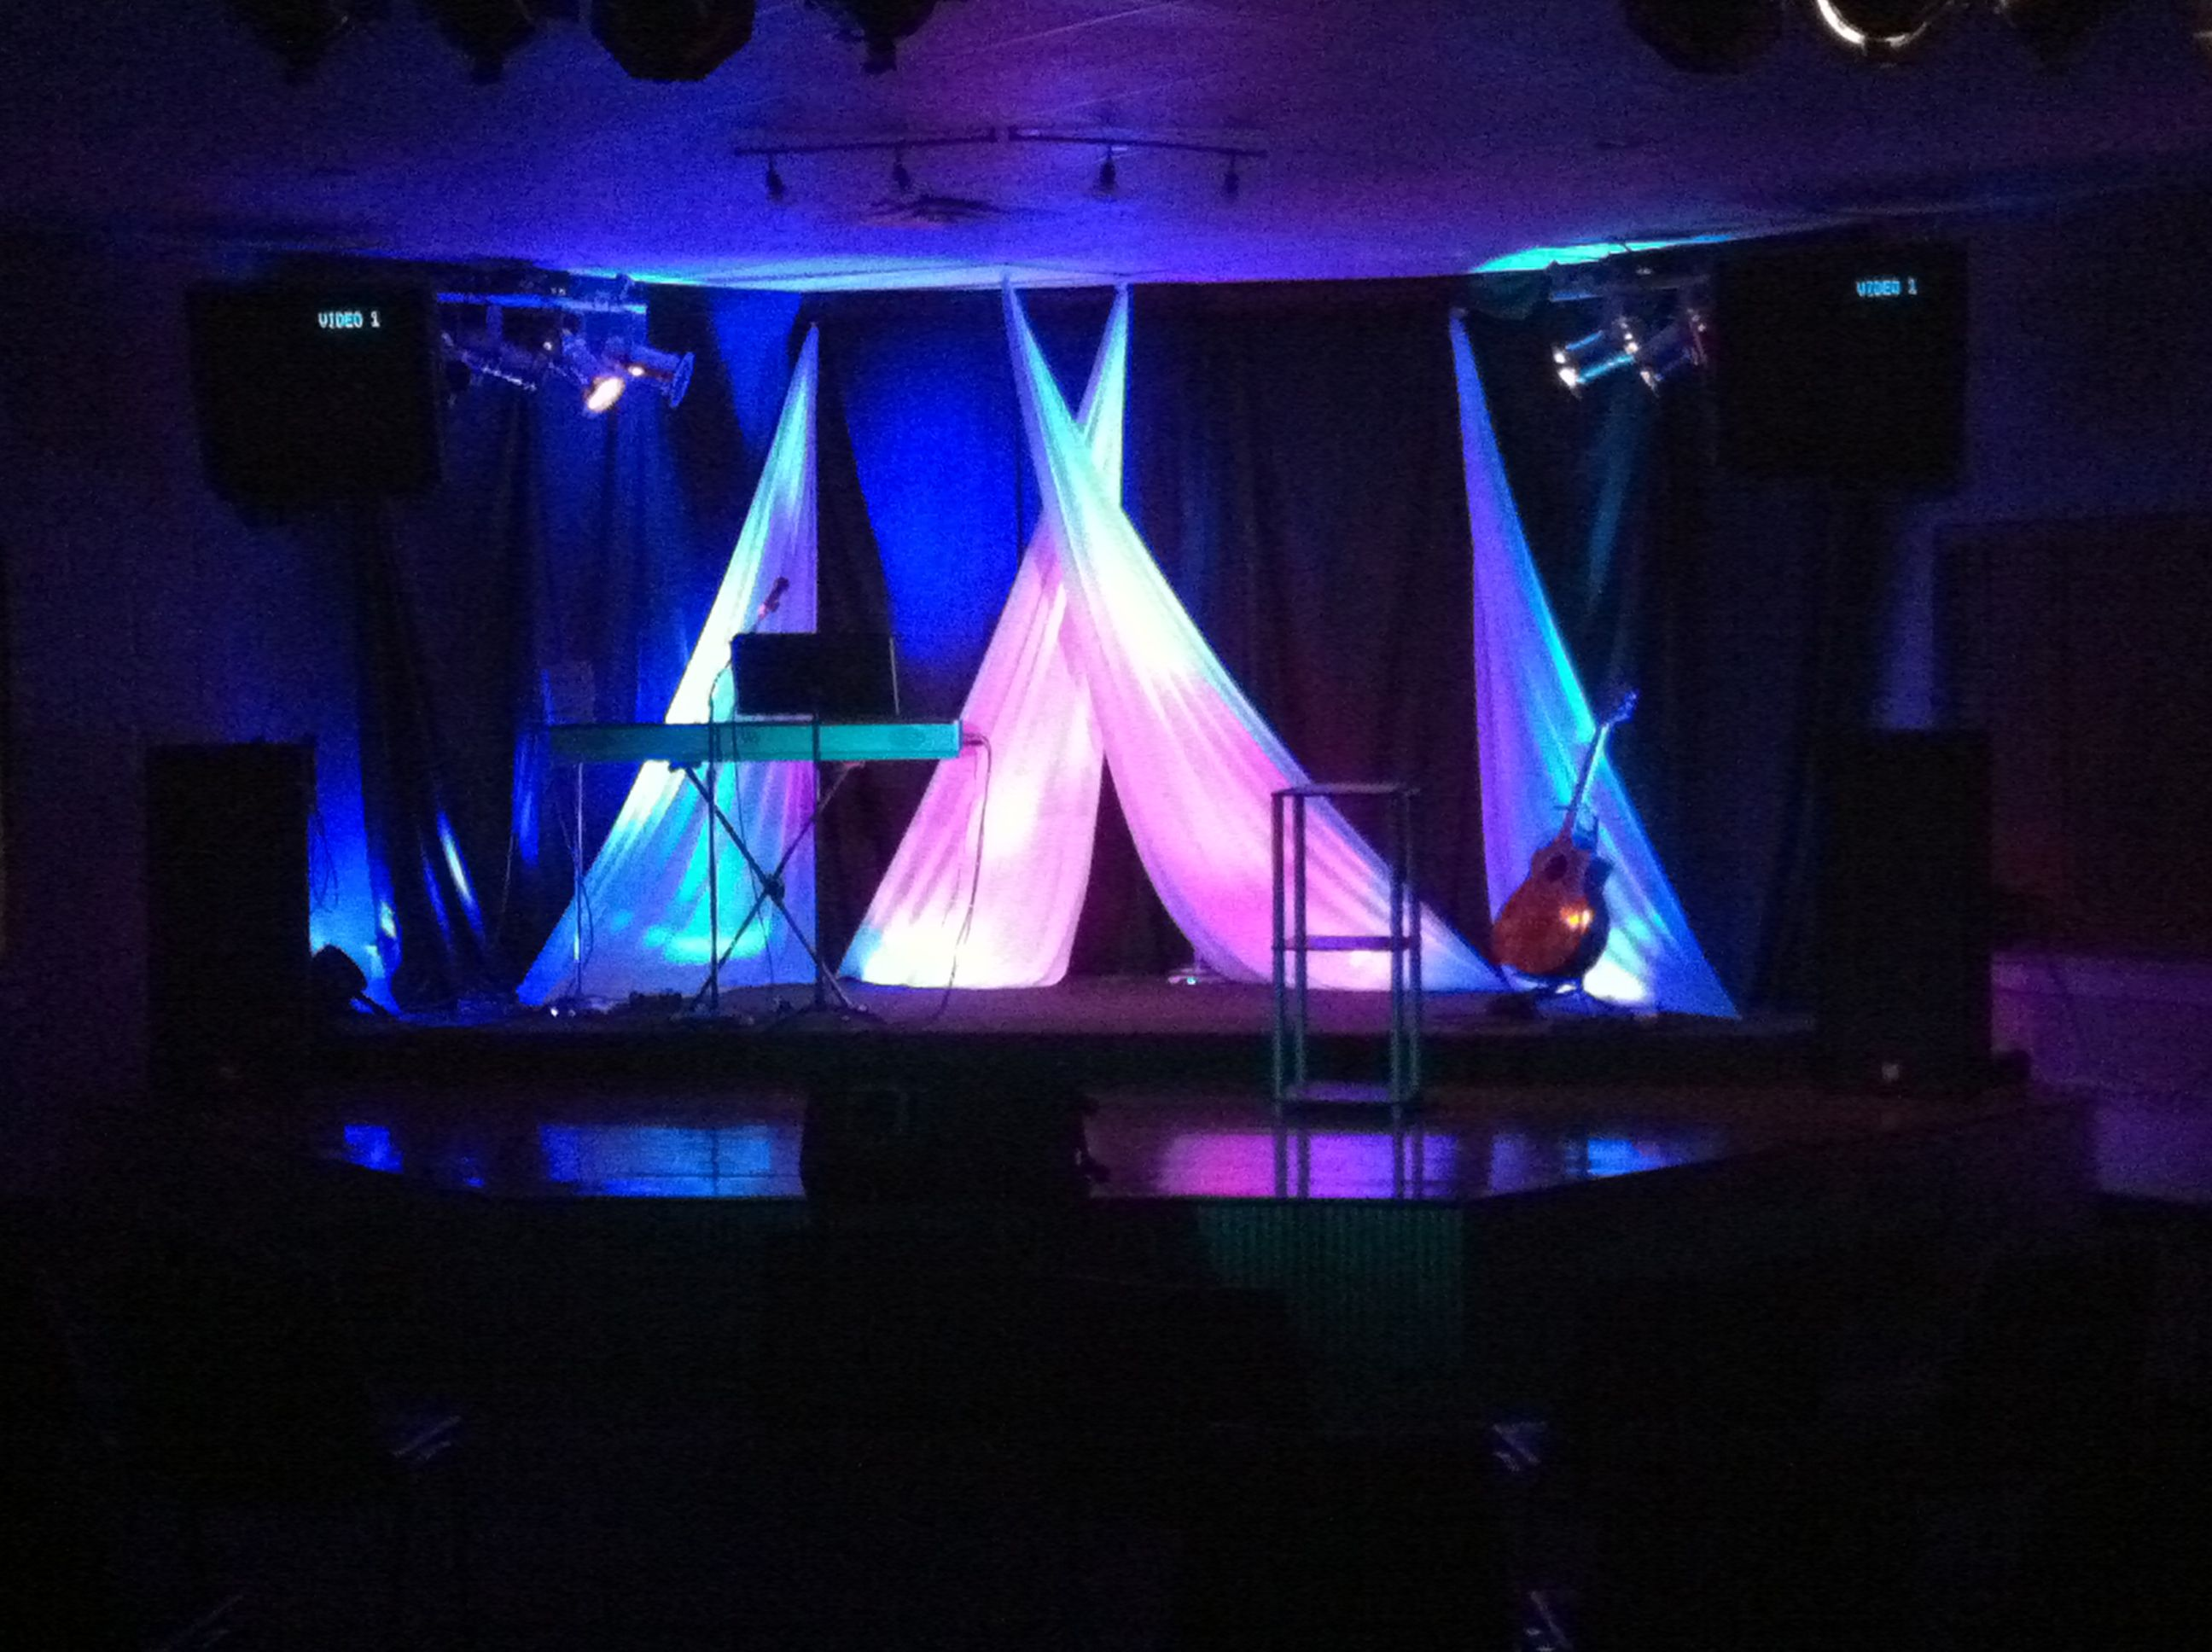 Cheap Church Stage Design Ideas | They pinned the other corners to on small church stage, small dance floor ideas, church stage decoration ideas, church stage design ideas, simple stage decoration ideas, small landscape ideas, small stage lights, small church ideas, small weddings ideas, small makeup ideas, christmas lights stage design ideas, stage effects ideas, small theater stage layout, creative stage design ideas, small stage set design ideas, small theatre ideas,